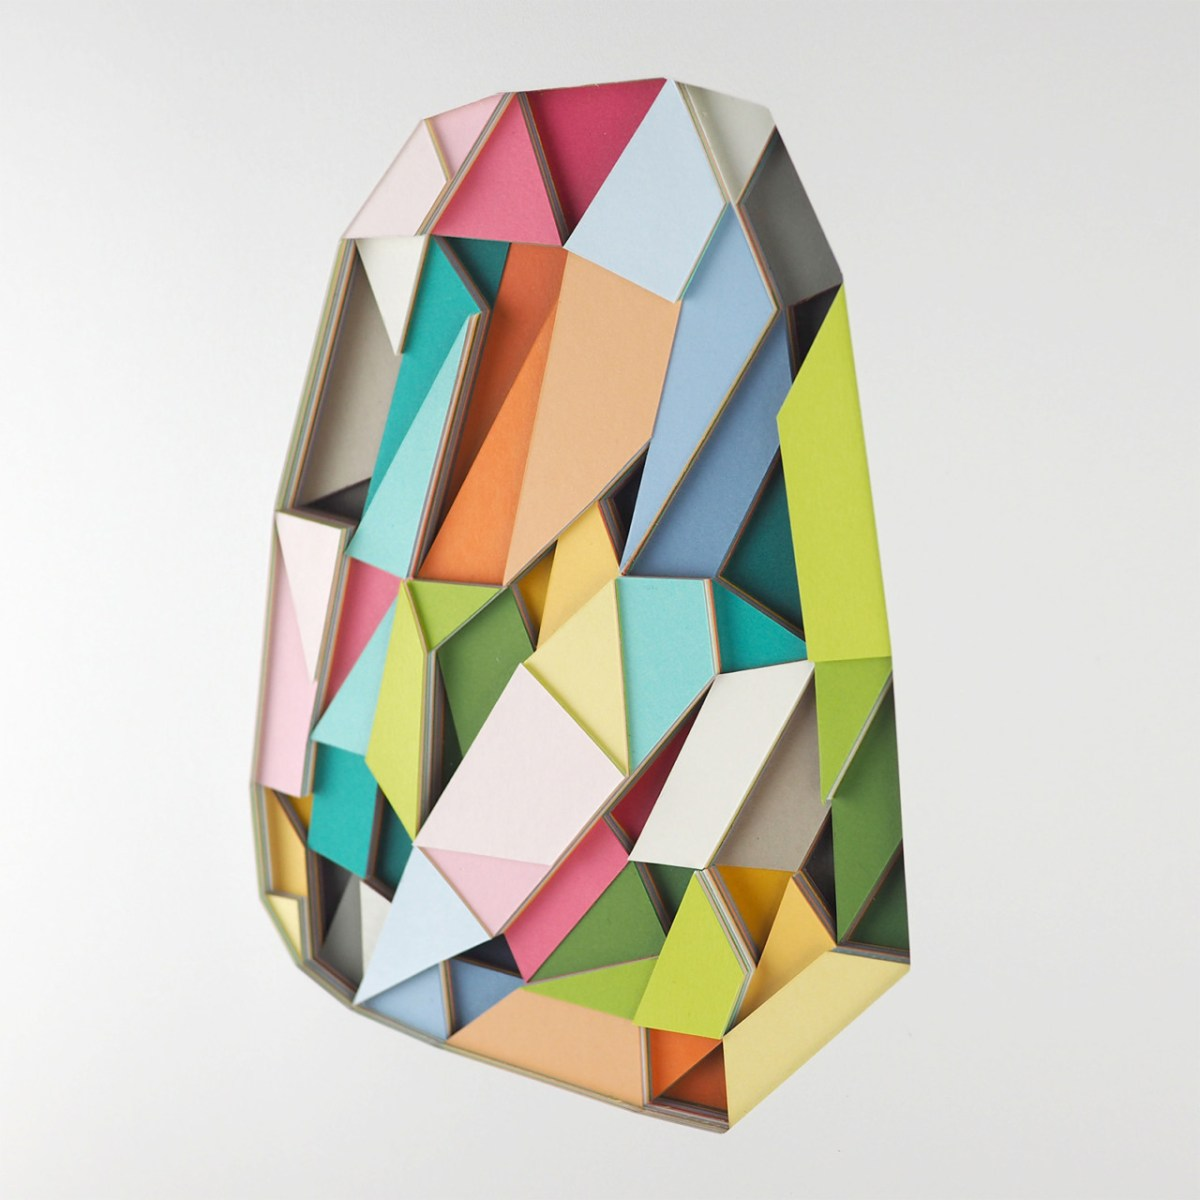 Colorful, Dimensional Cut Paper Art